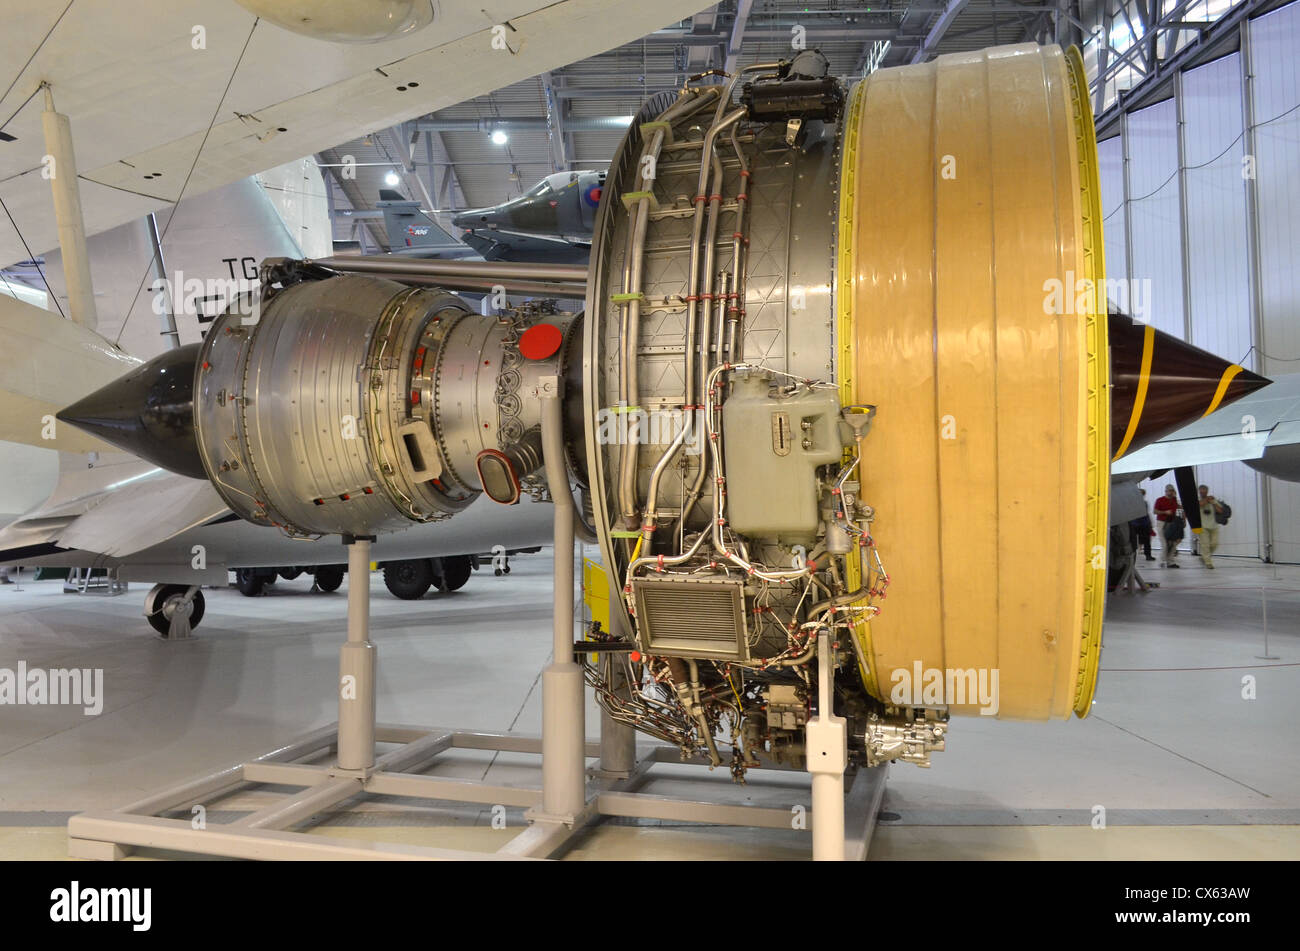 Rolls Royce Trent 800 turbofan engine on display at Duxford Airspace - Stock Image